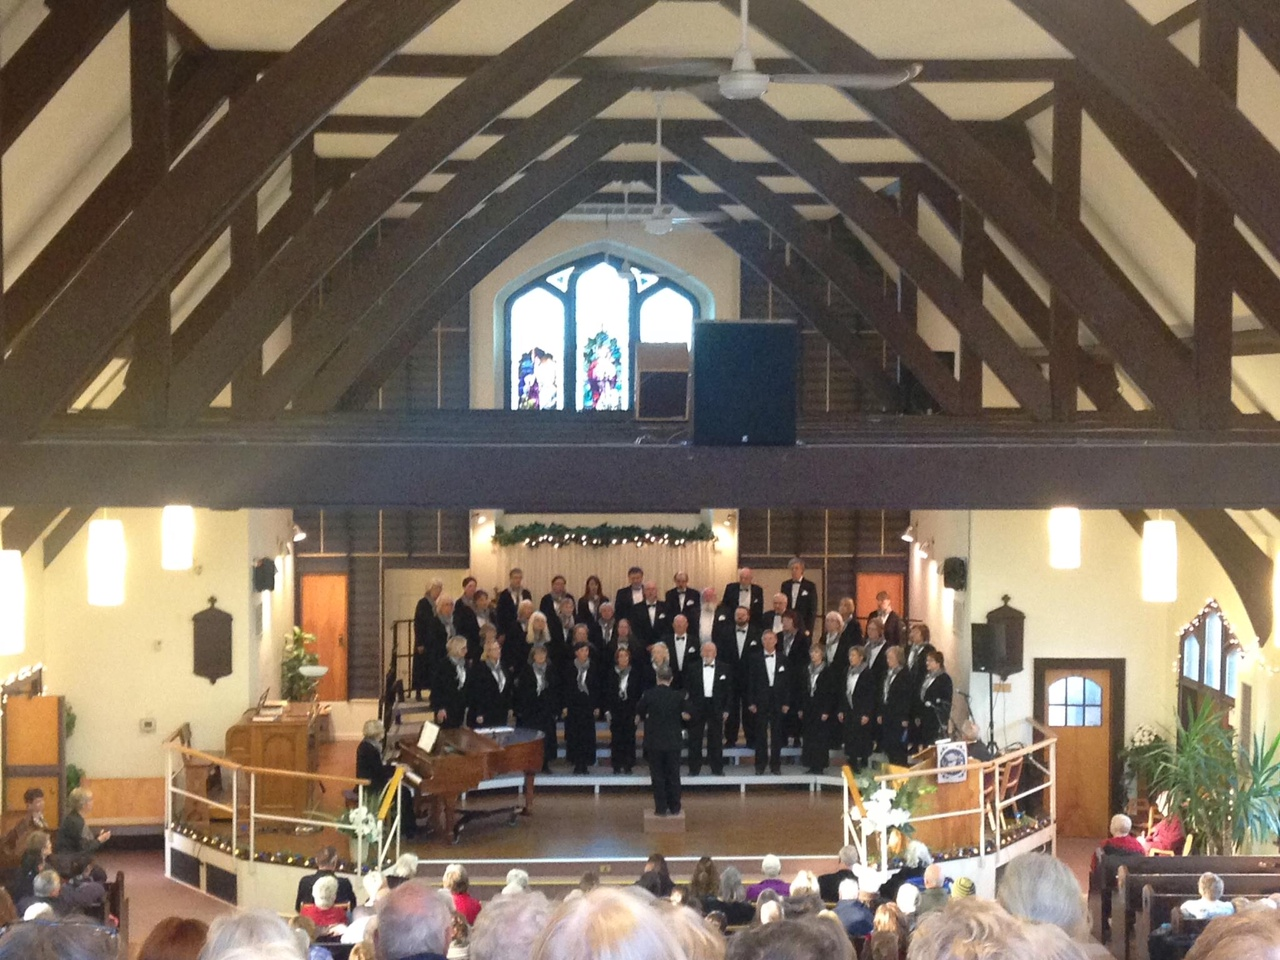 Standing choral risers in church